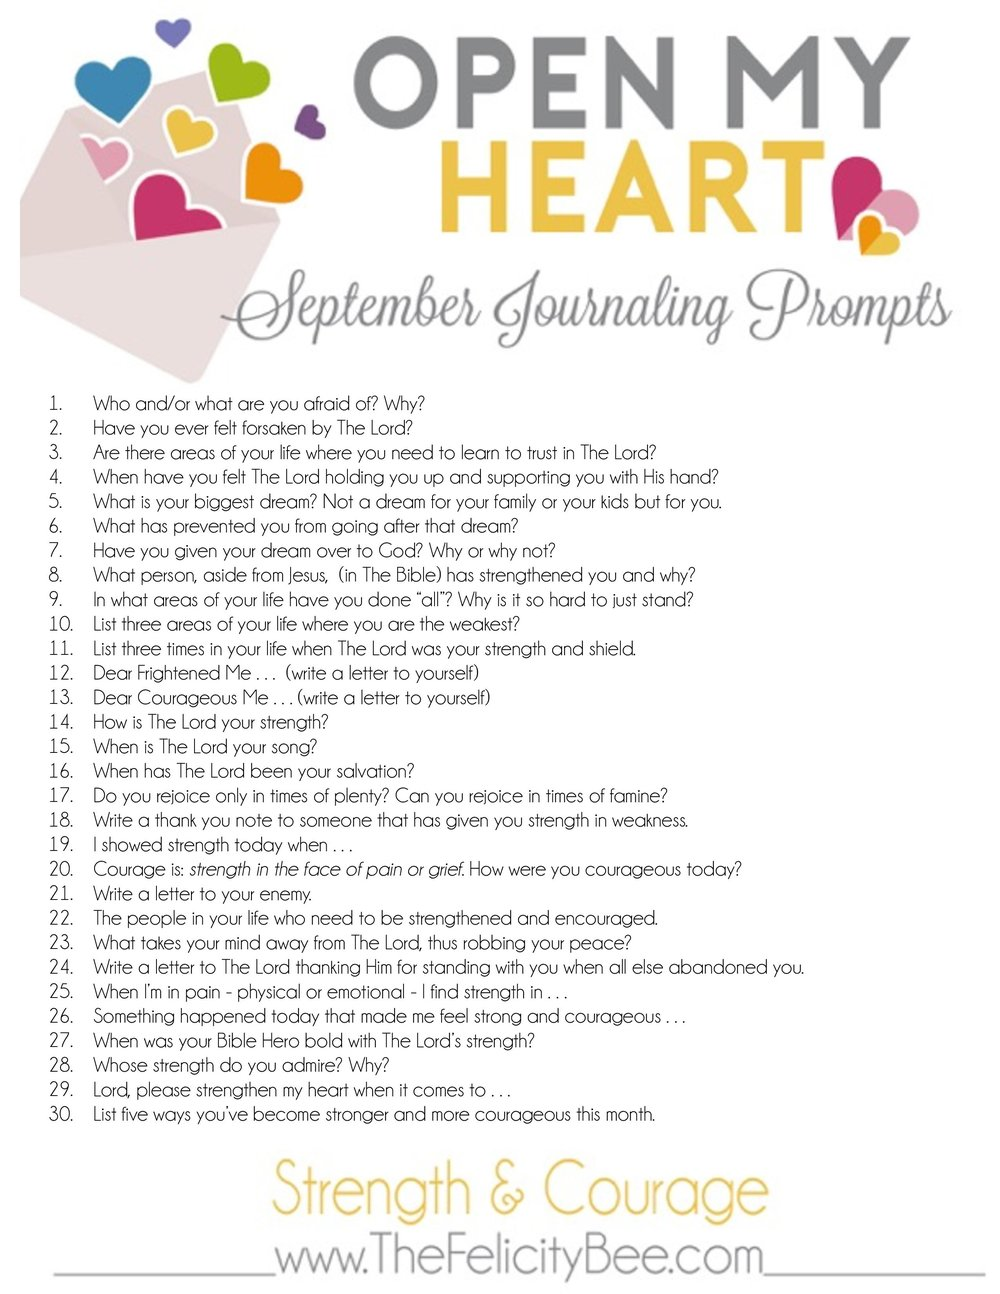 CLICK HERE  to download your printable OPEN MY HEART journaling plans.